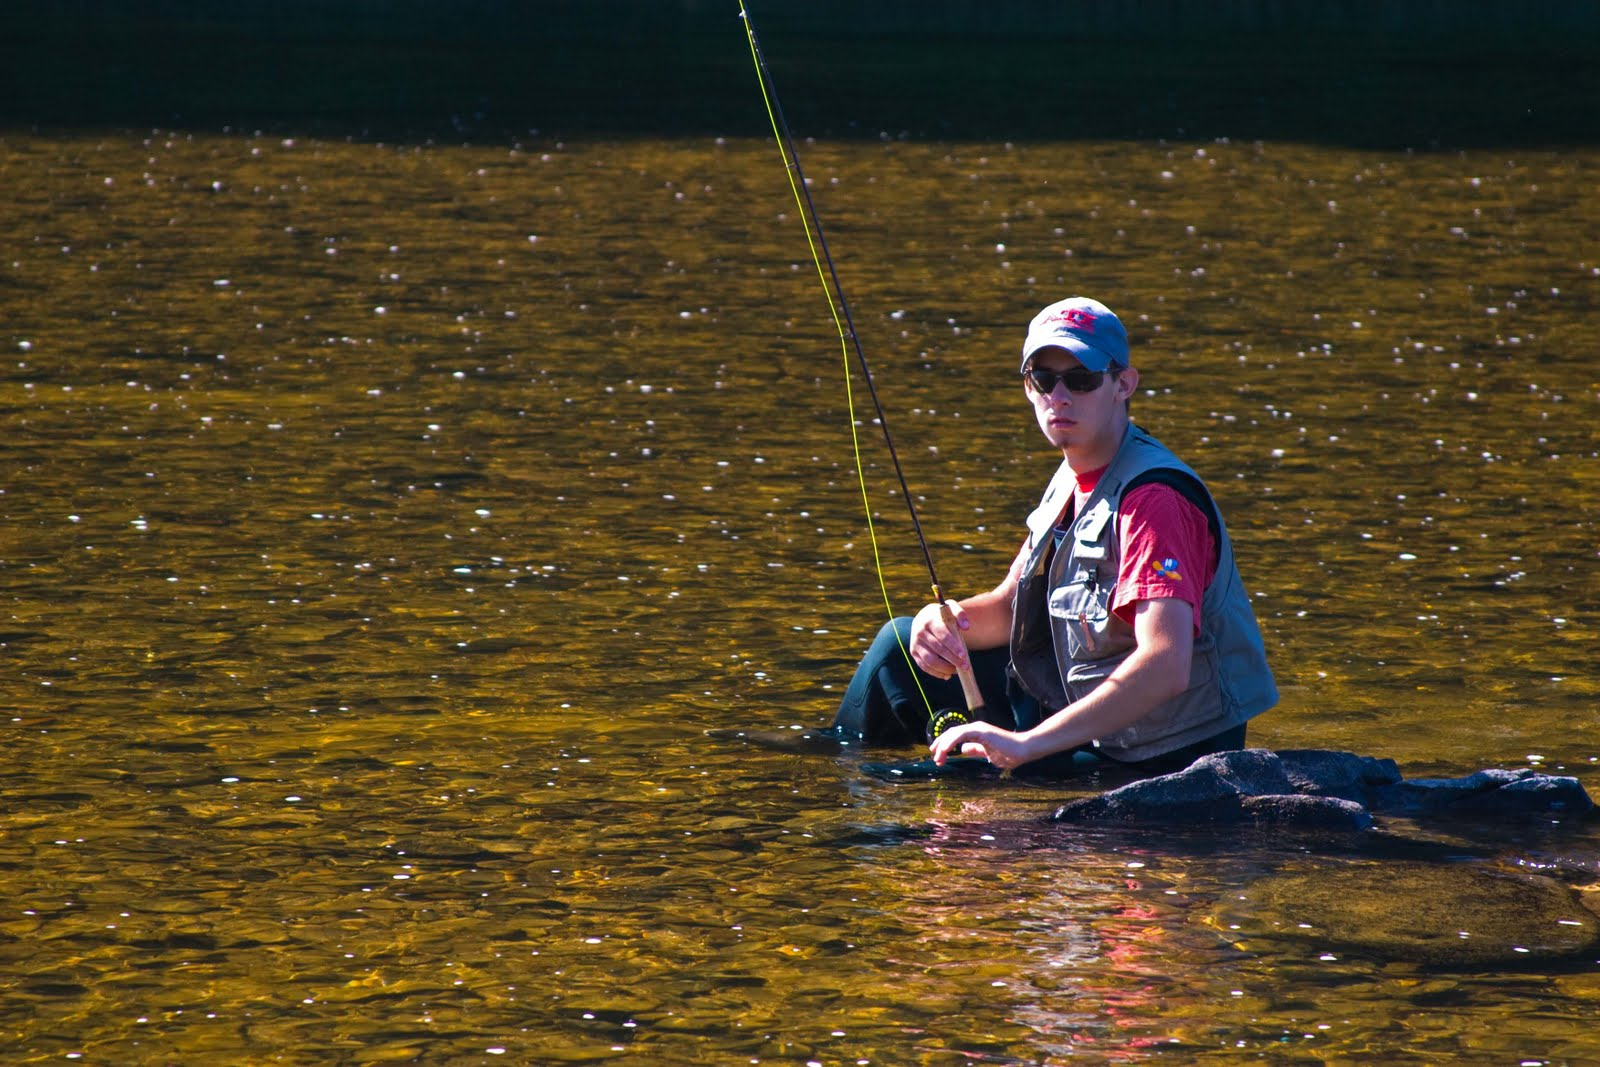 Fly fishing the Tionesta